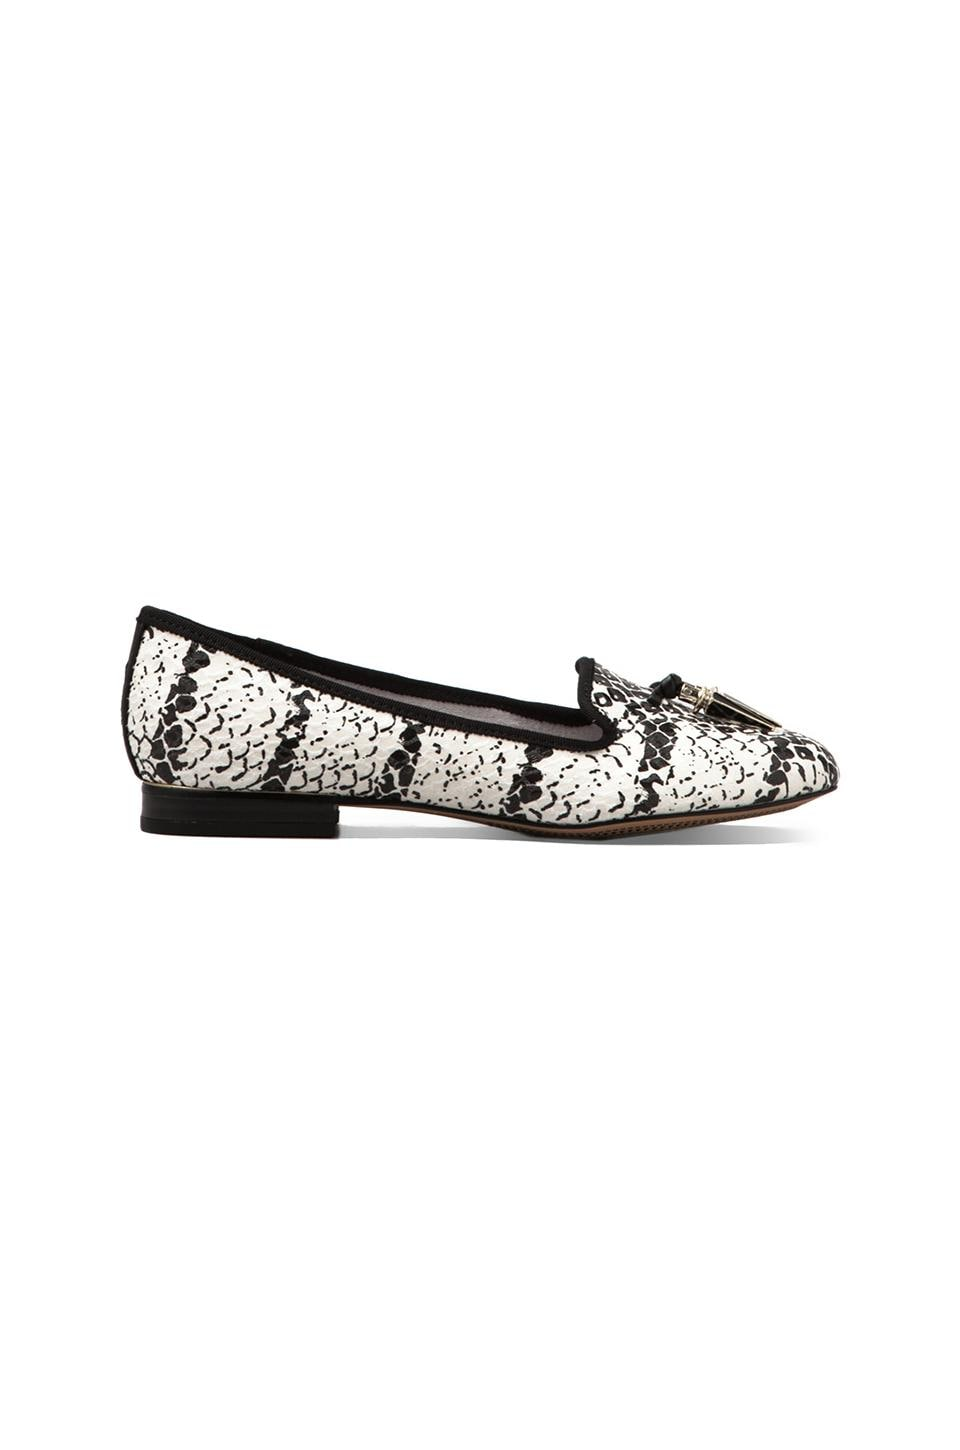 Circus by Sam Edelman Nell Loafer in Black/White Snake